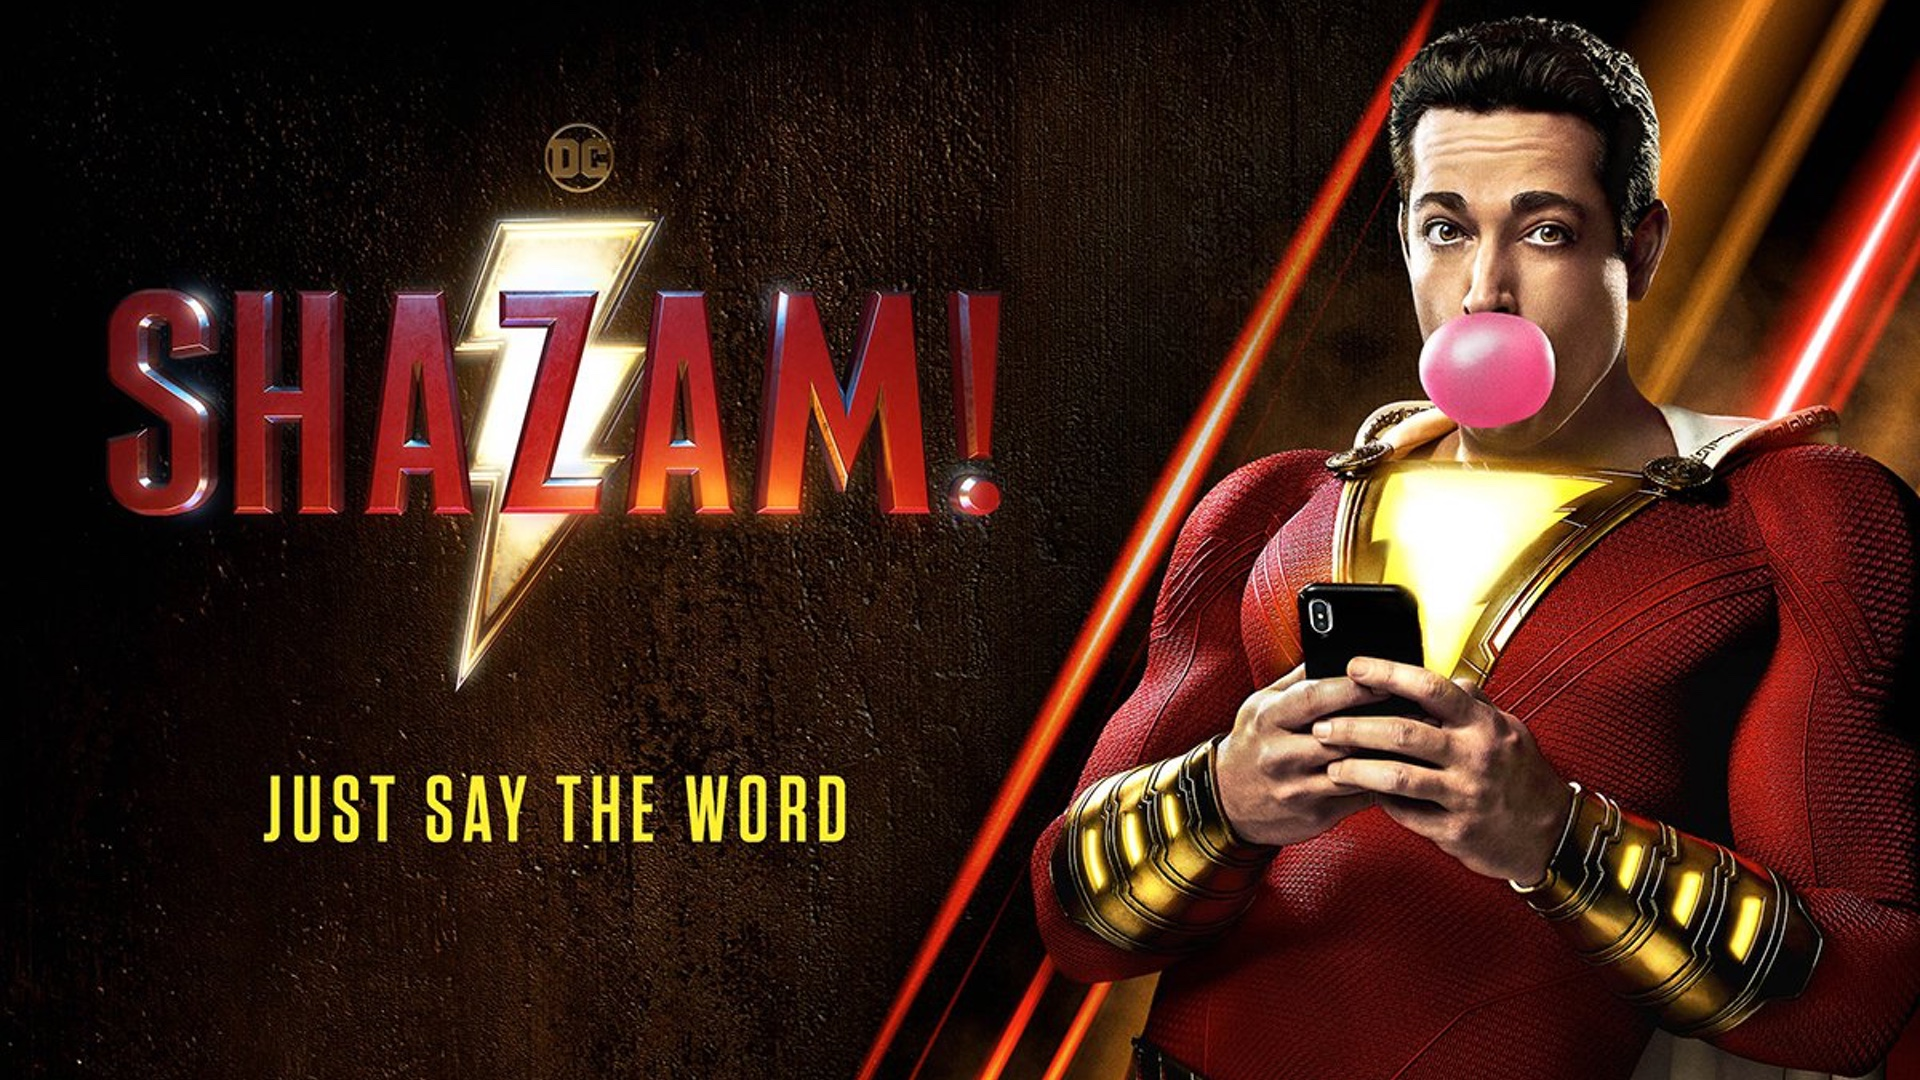 new-poster-for-shazam-asks-us-to-just-say-the-word-social.jpg